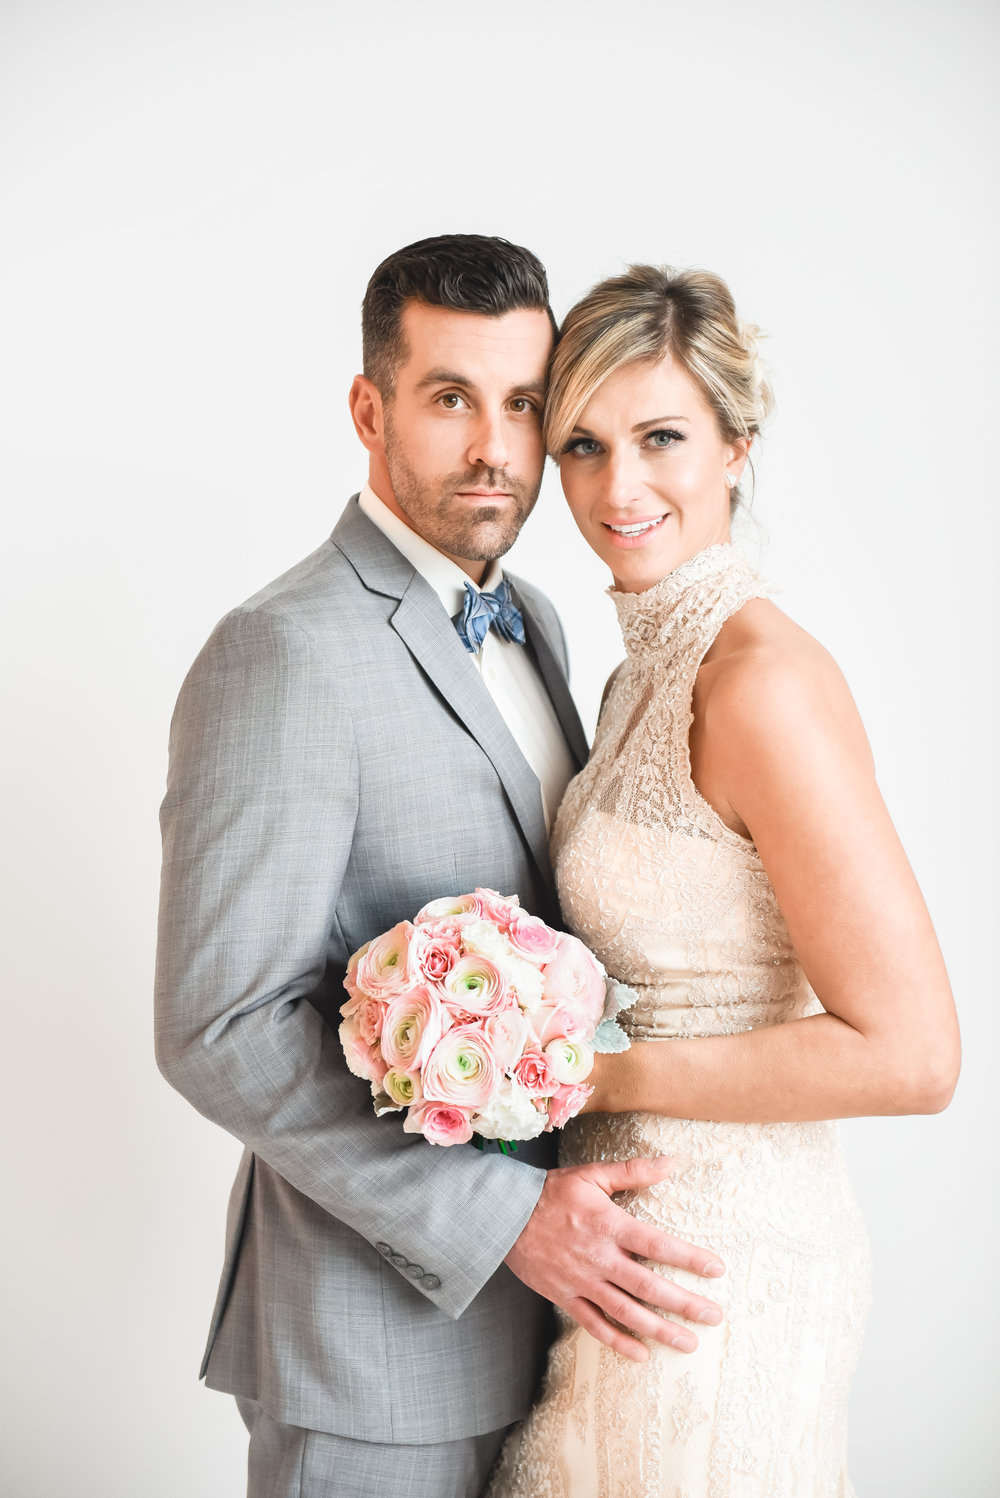 Julie Nicole Weddings . Model Jeff and Michelle of Maeck Weddings . Flowers by La Petite Fleur